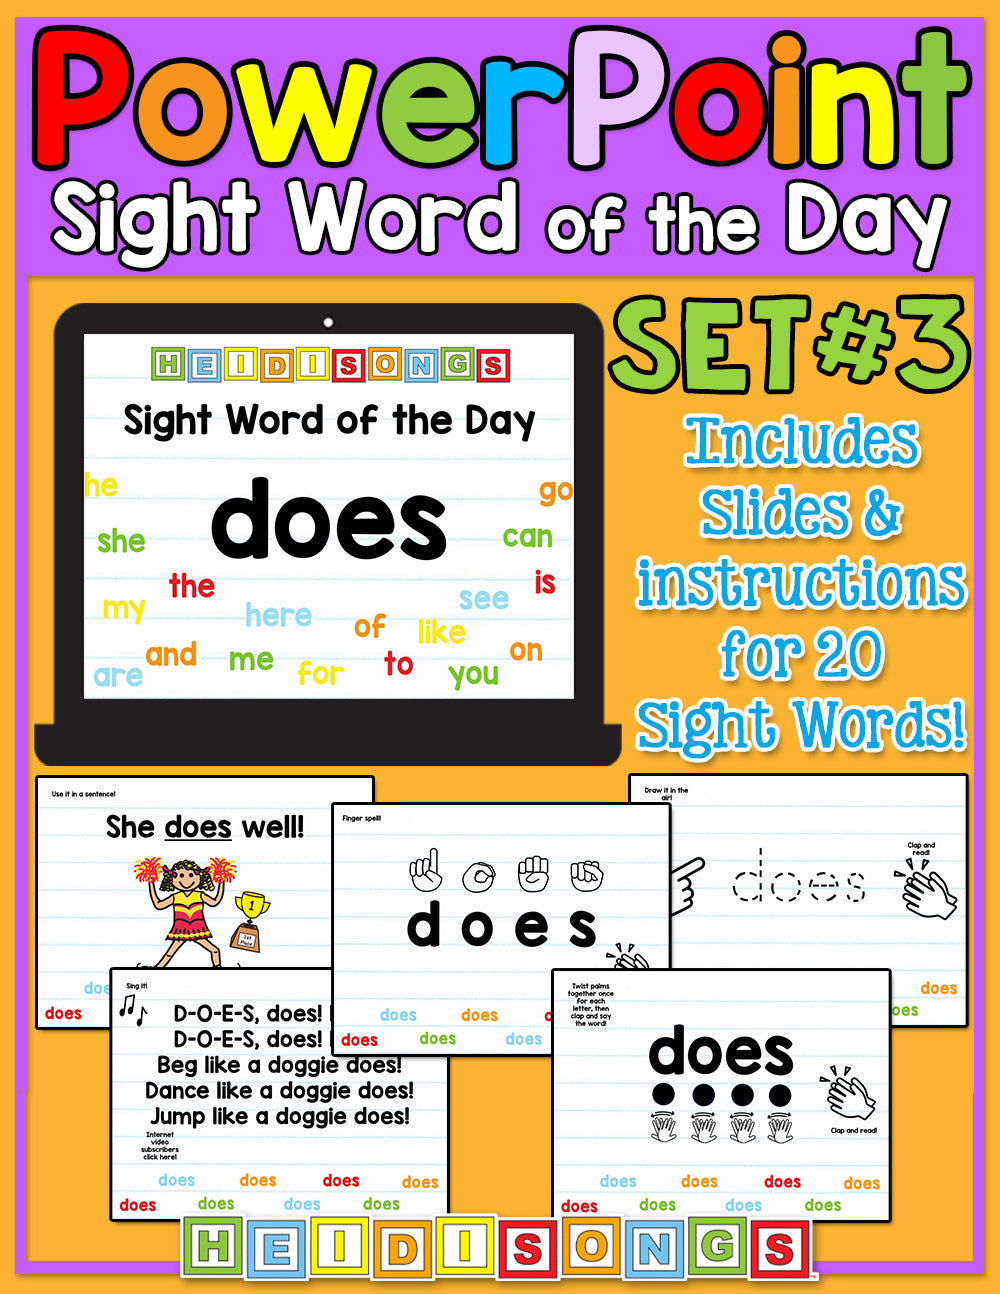 Sight Word of the Day For PowerPoint - Set 3